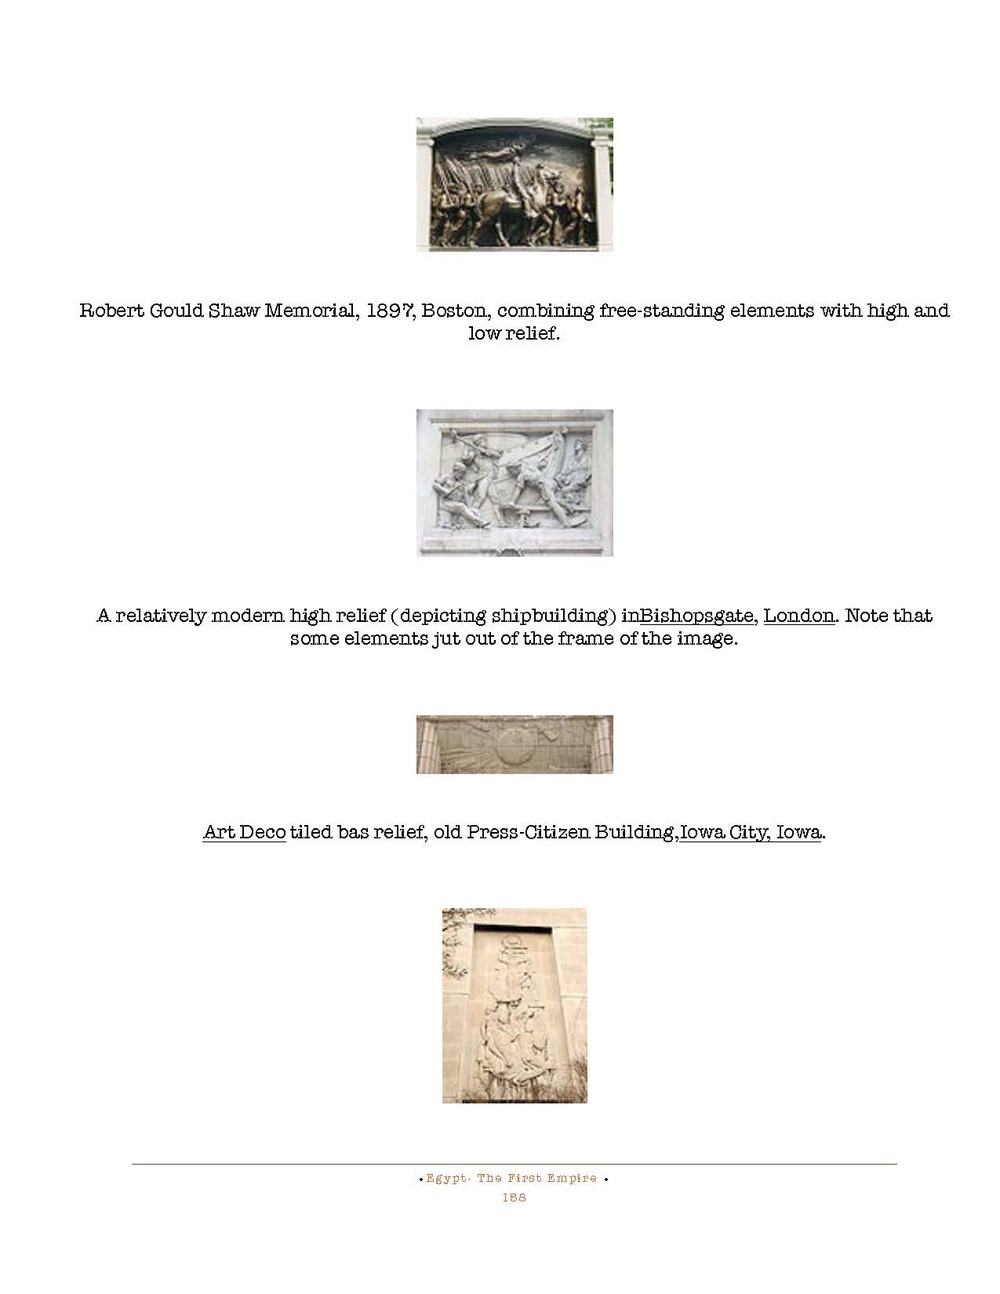 HOCE- Egypt  (First Empire) Notes_Page_158.jpg